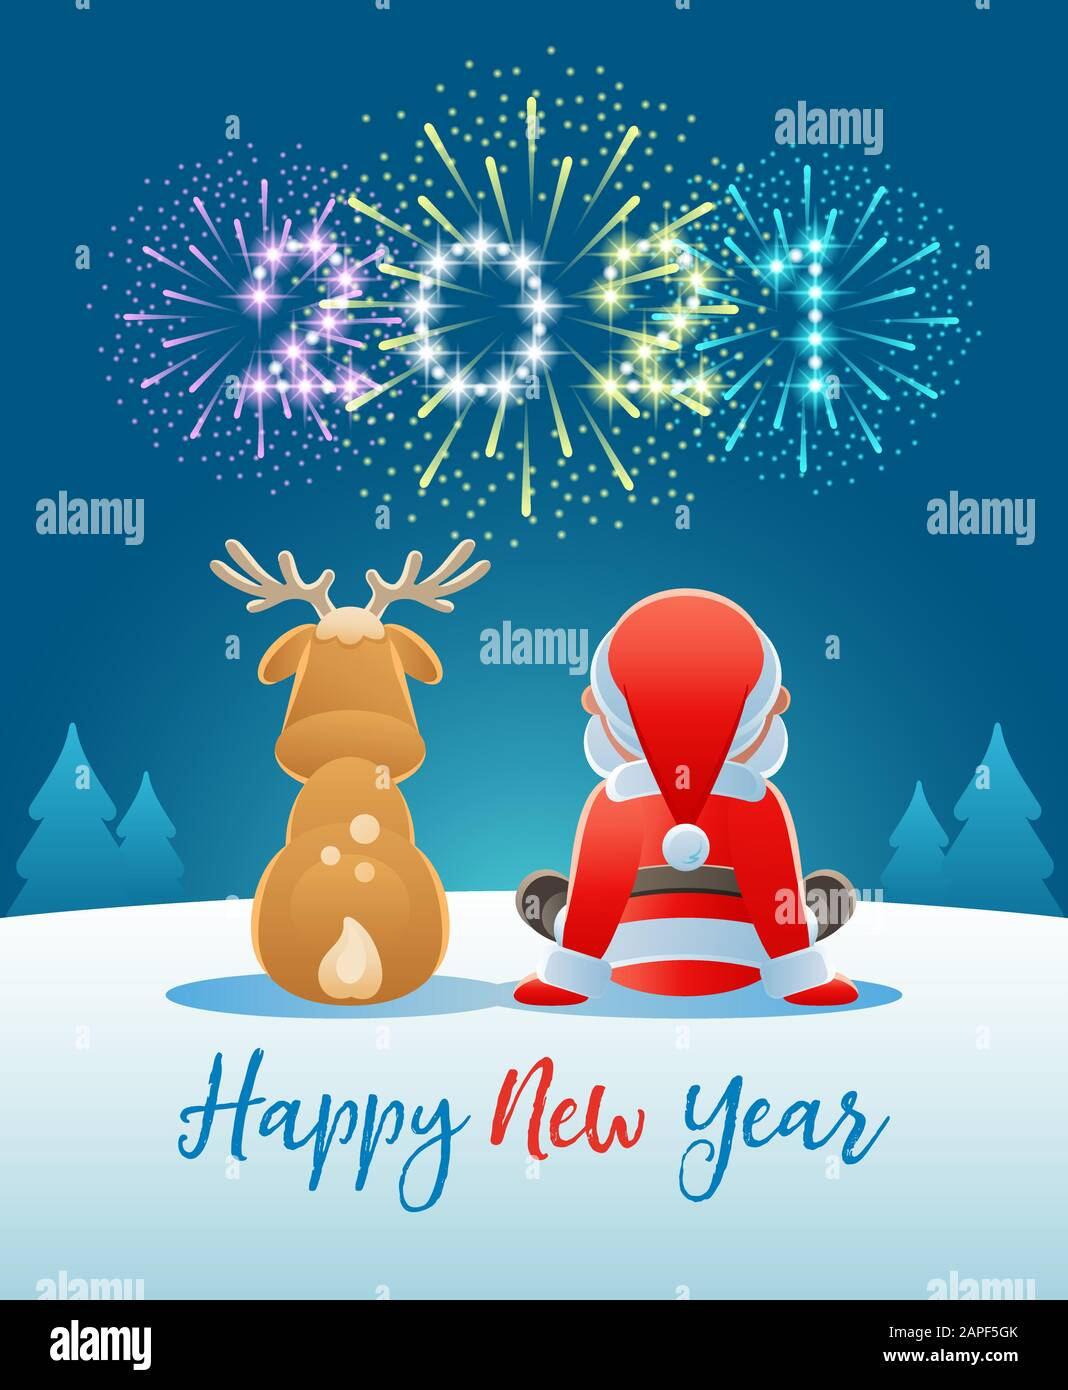 2021 Happy New Year. Cute Santa Claus and Reindeer watching the Fireworks.  Vector illustration Stock Vector Image & Art - Alamy